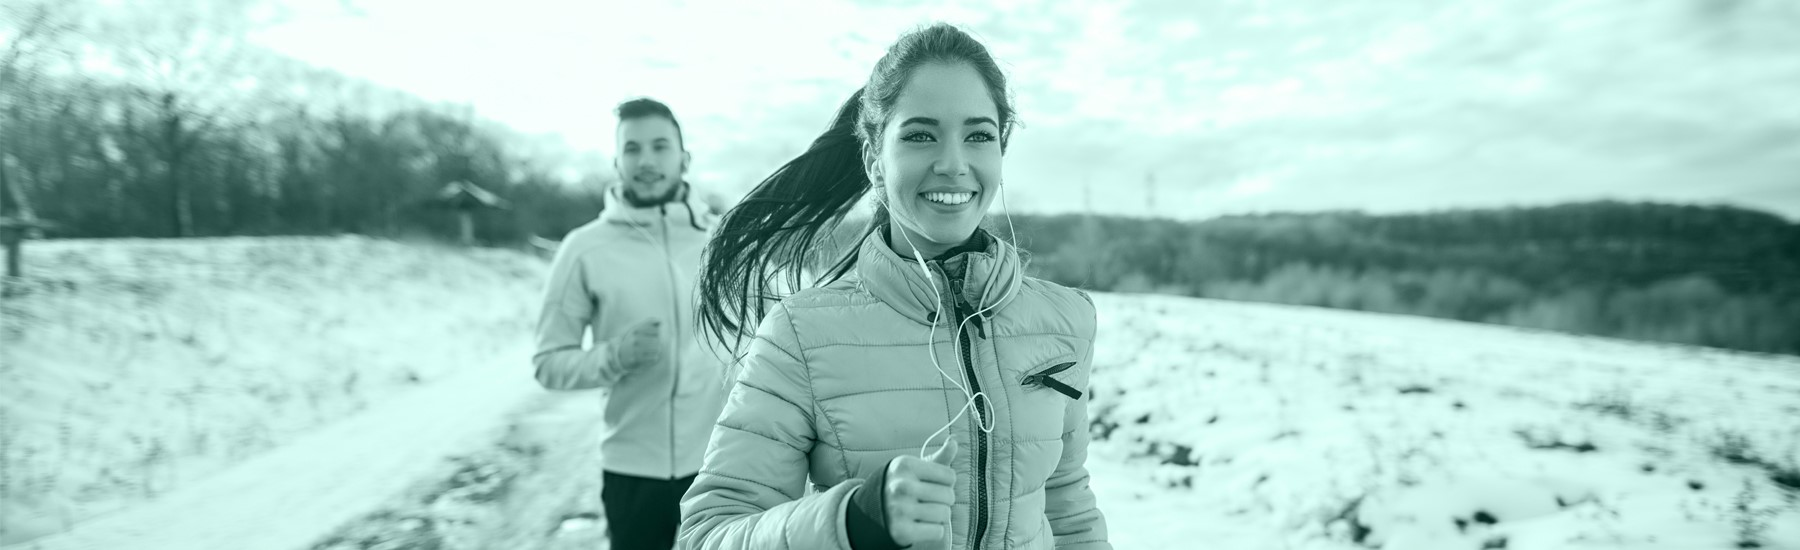 Woman and man jogging in snowy weather